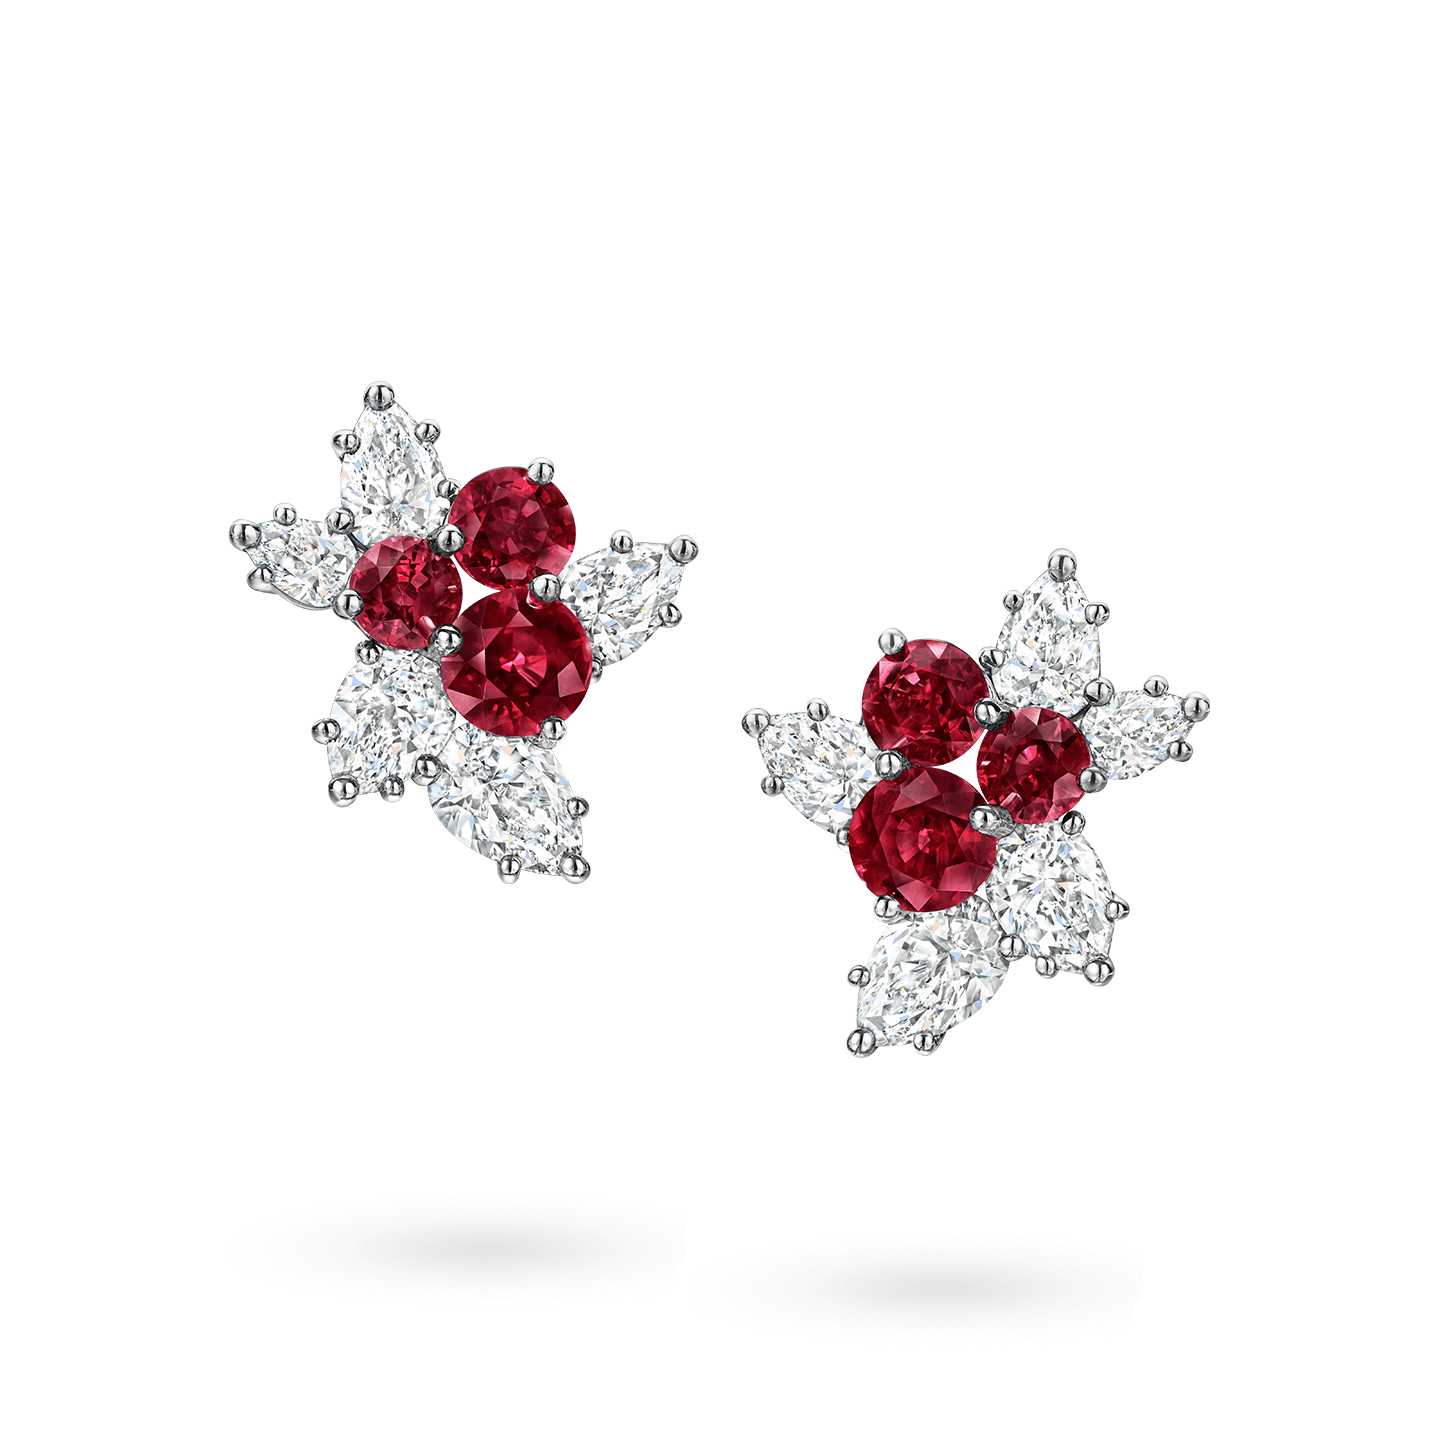 Berry Cluster Ruby and Diamond Earrings, Product Image 1